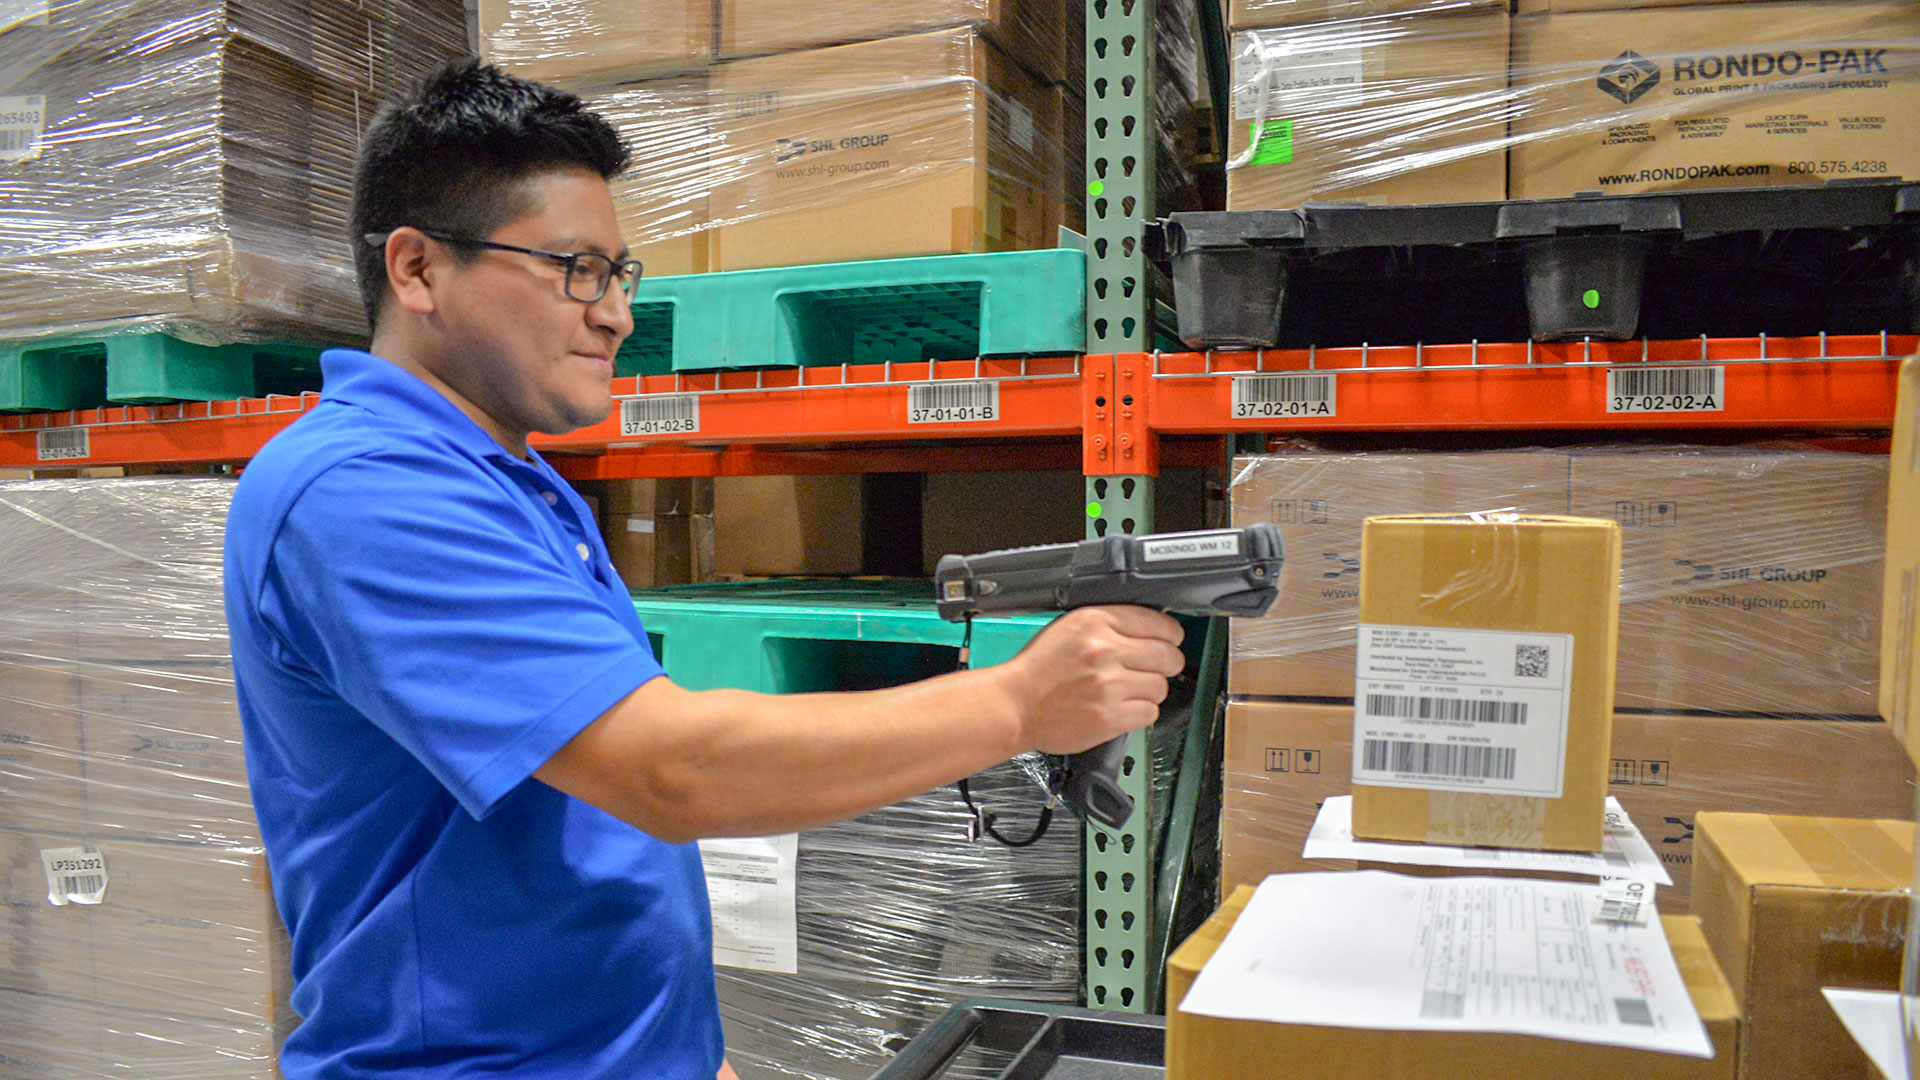 Handheld scan devices allow ease of data and communication for inventory management